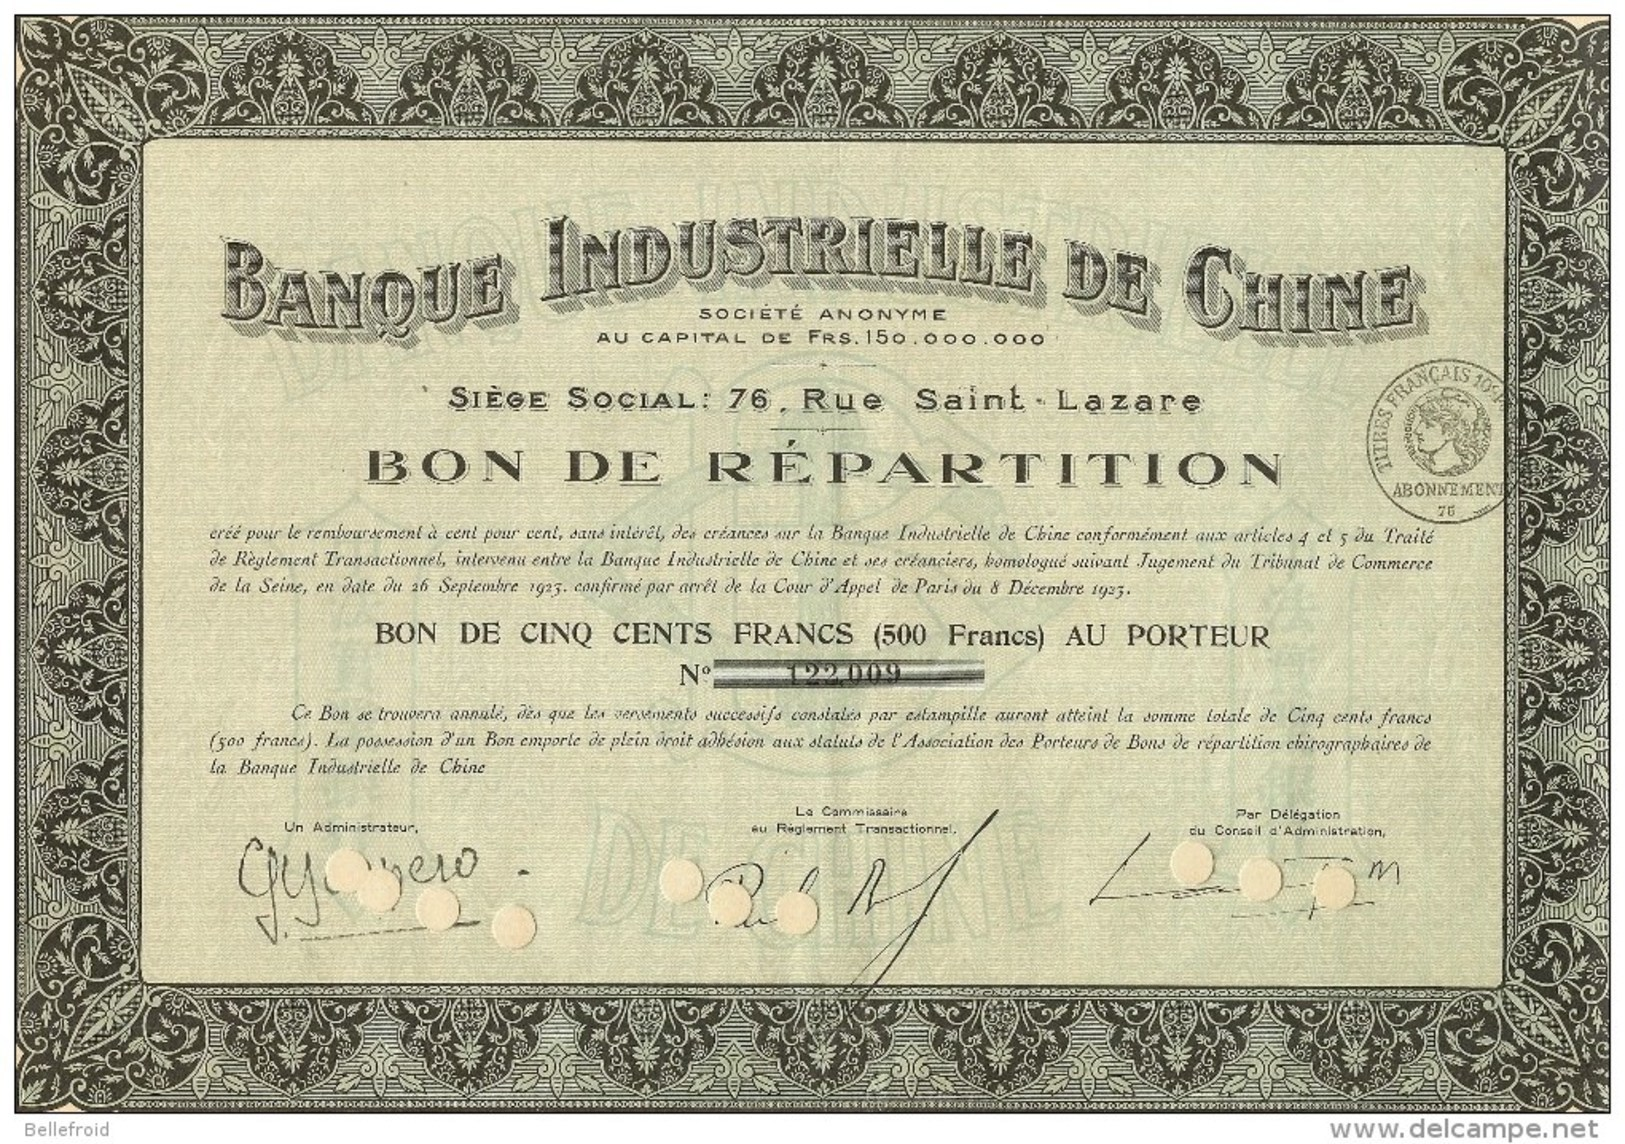 1923 CHINE  INDUSTRIAL BANK OF CHINA- REPARTITION BOND OF 500 FRANCS - Asie